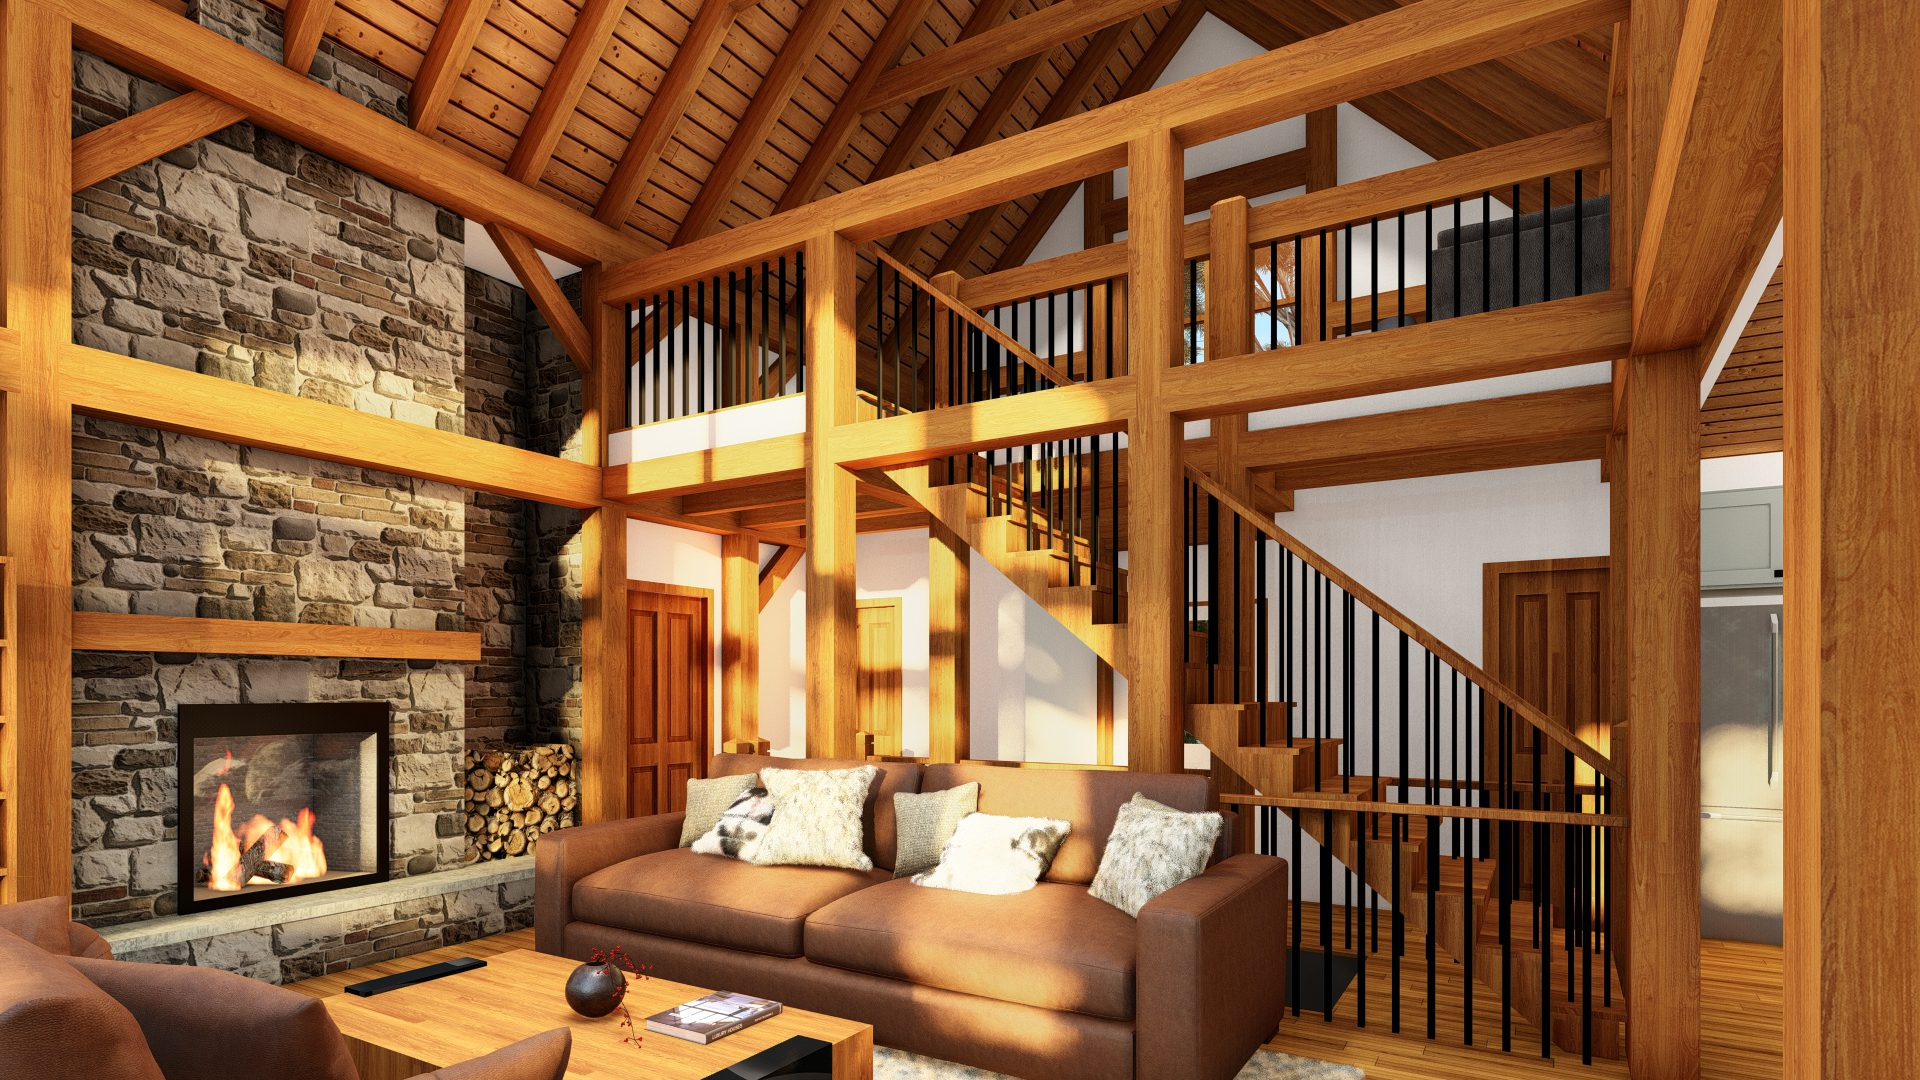 Normerica Timber Frames, House Plans, The Tobermory 3949, Interior, Living Room, Fireplace